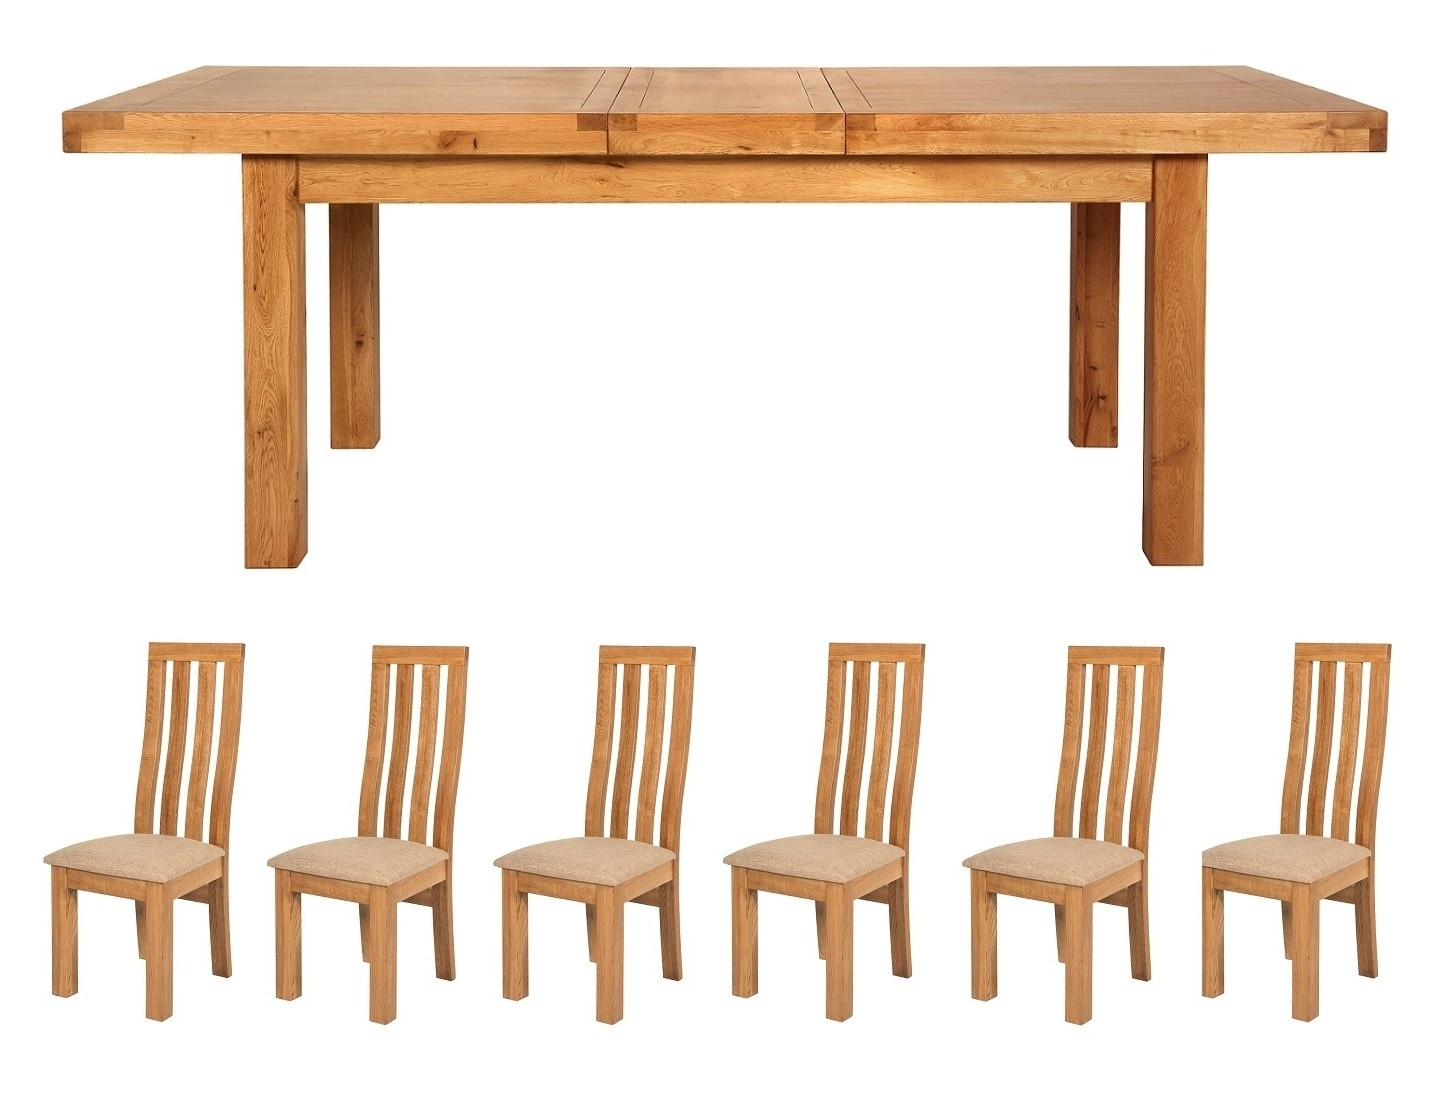 Fashionable Light Oak Dining Tables And 6 Chairs Inside Manor Solid Light Oak Large Extending Dining Table And 6 Chairs Set (View 10 of 25)